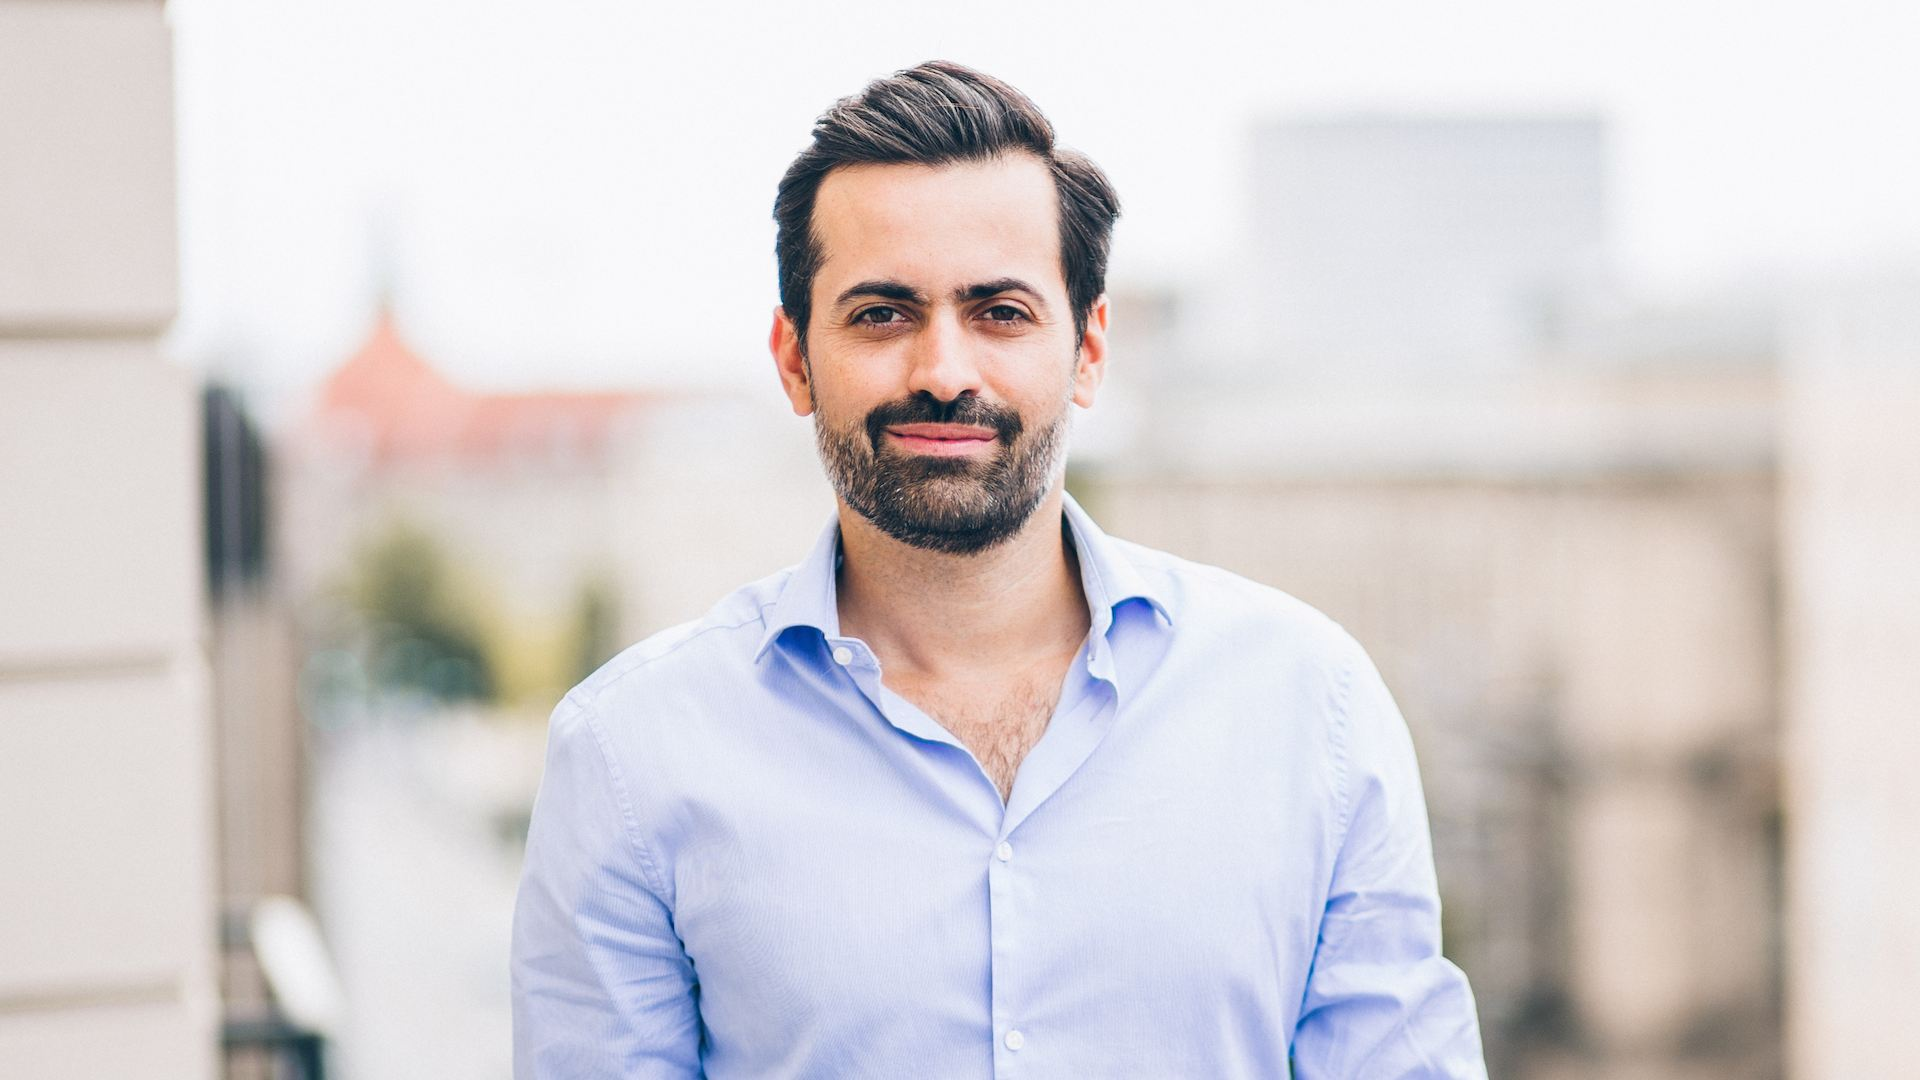 Friedrich is an entrepreneur and early stage investor with over 15 years of company building experience. He co-founded an award-winning global e-commerce marketing platform that made over €1 billion in sales.